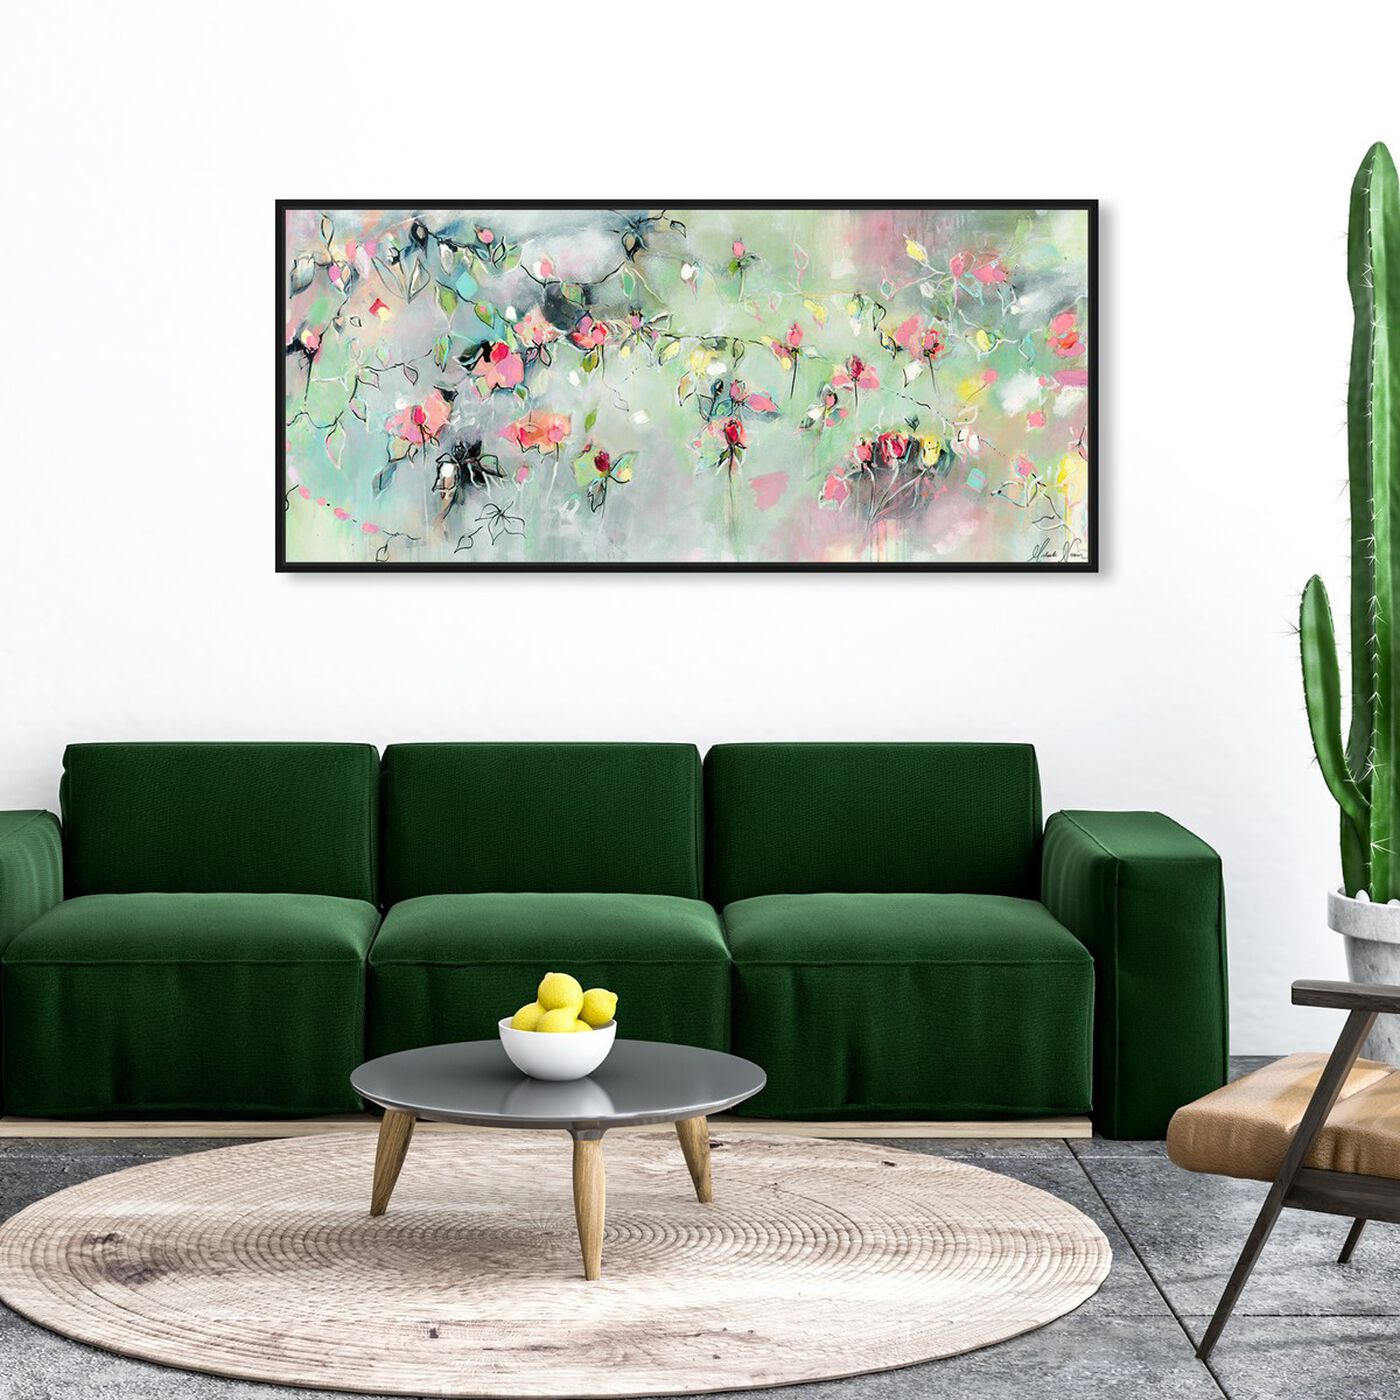 Hanging view of Appear and Disappear by Michaela Nessim featuring abstract and flowers art.